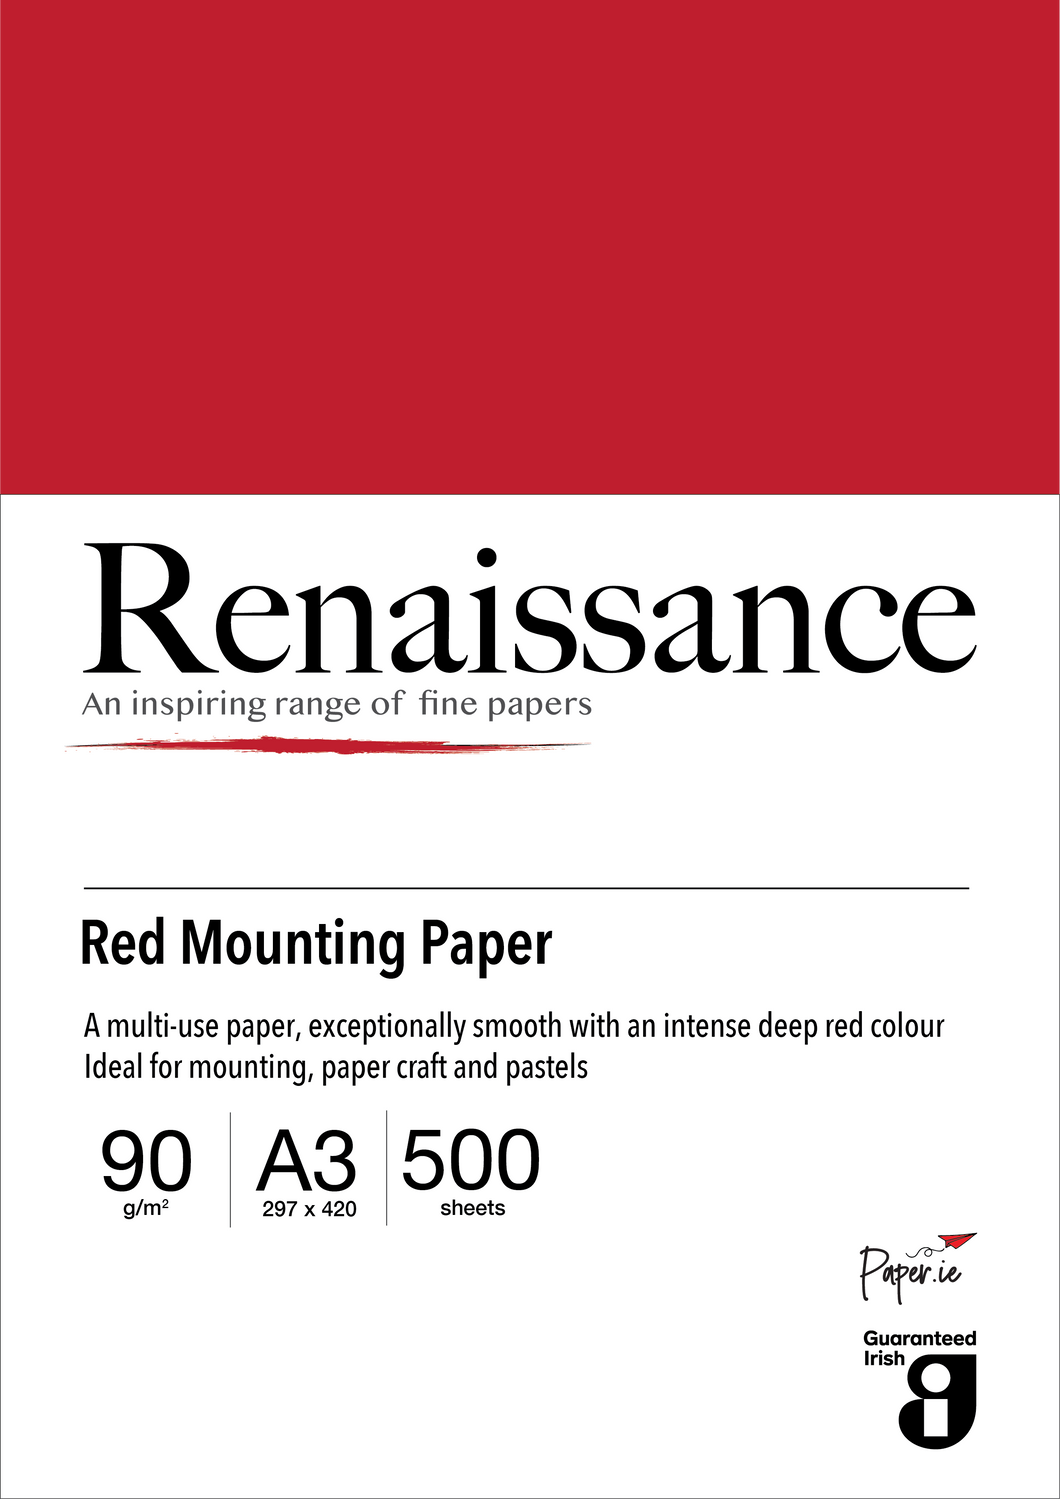 Red Mounting Paper